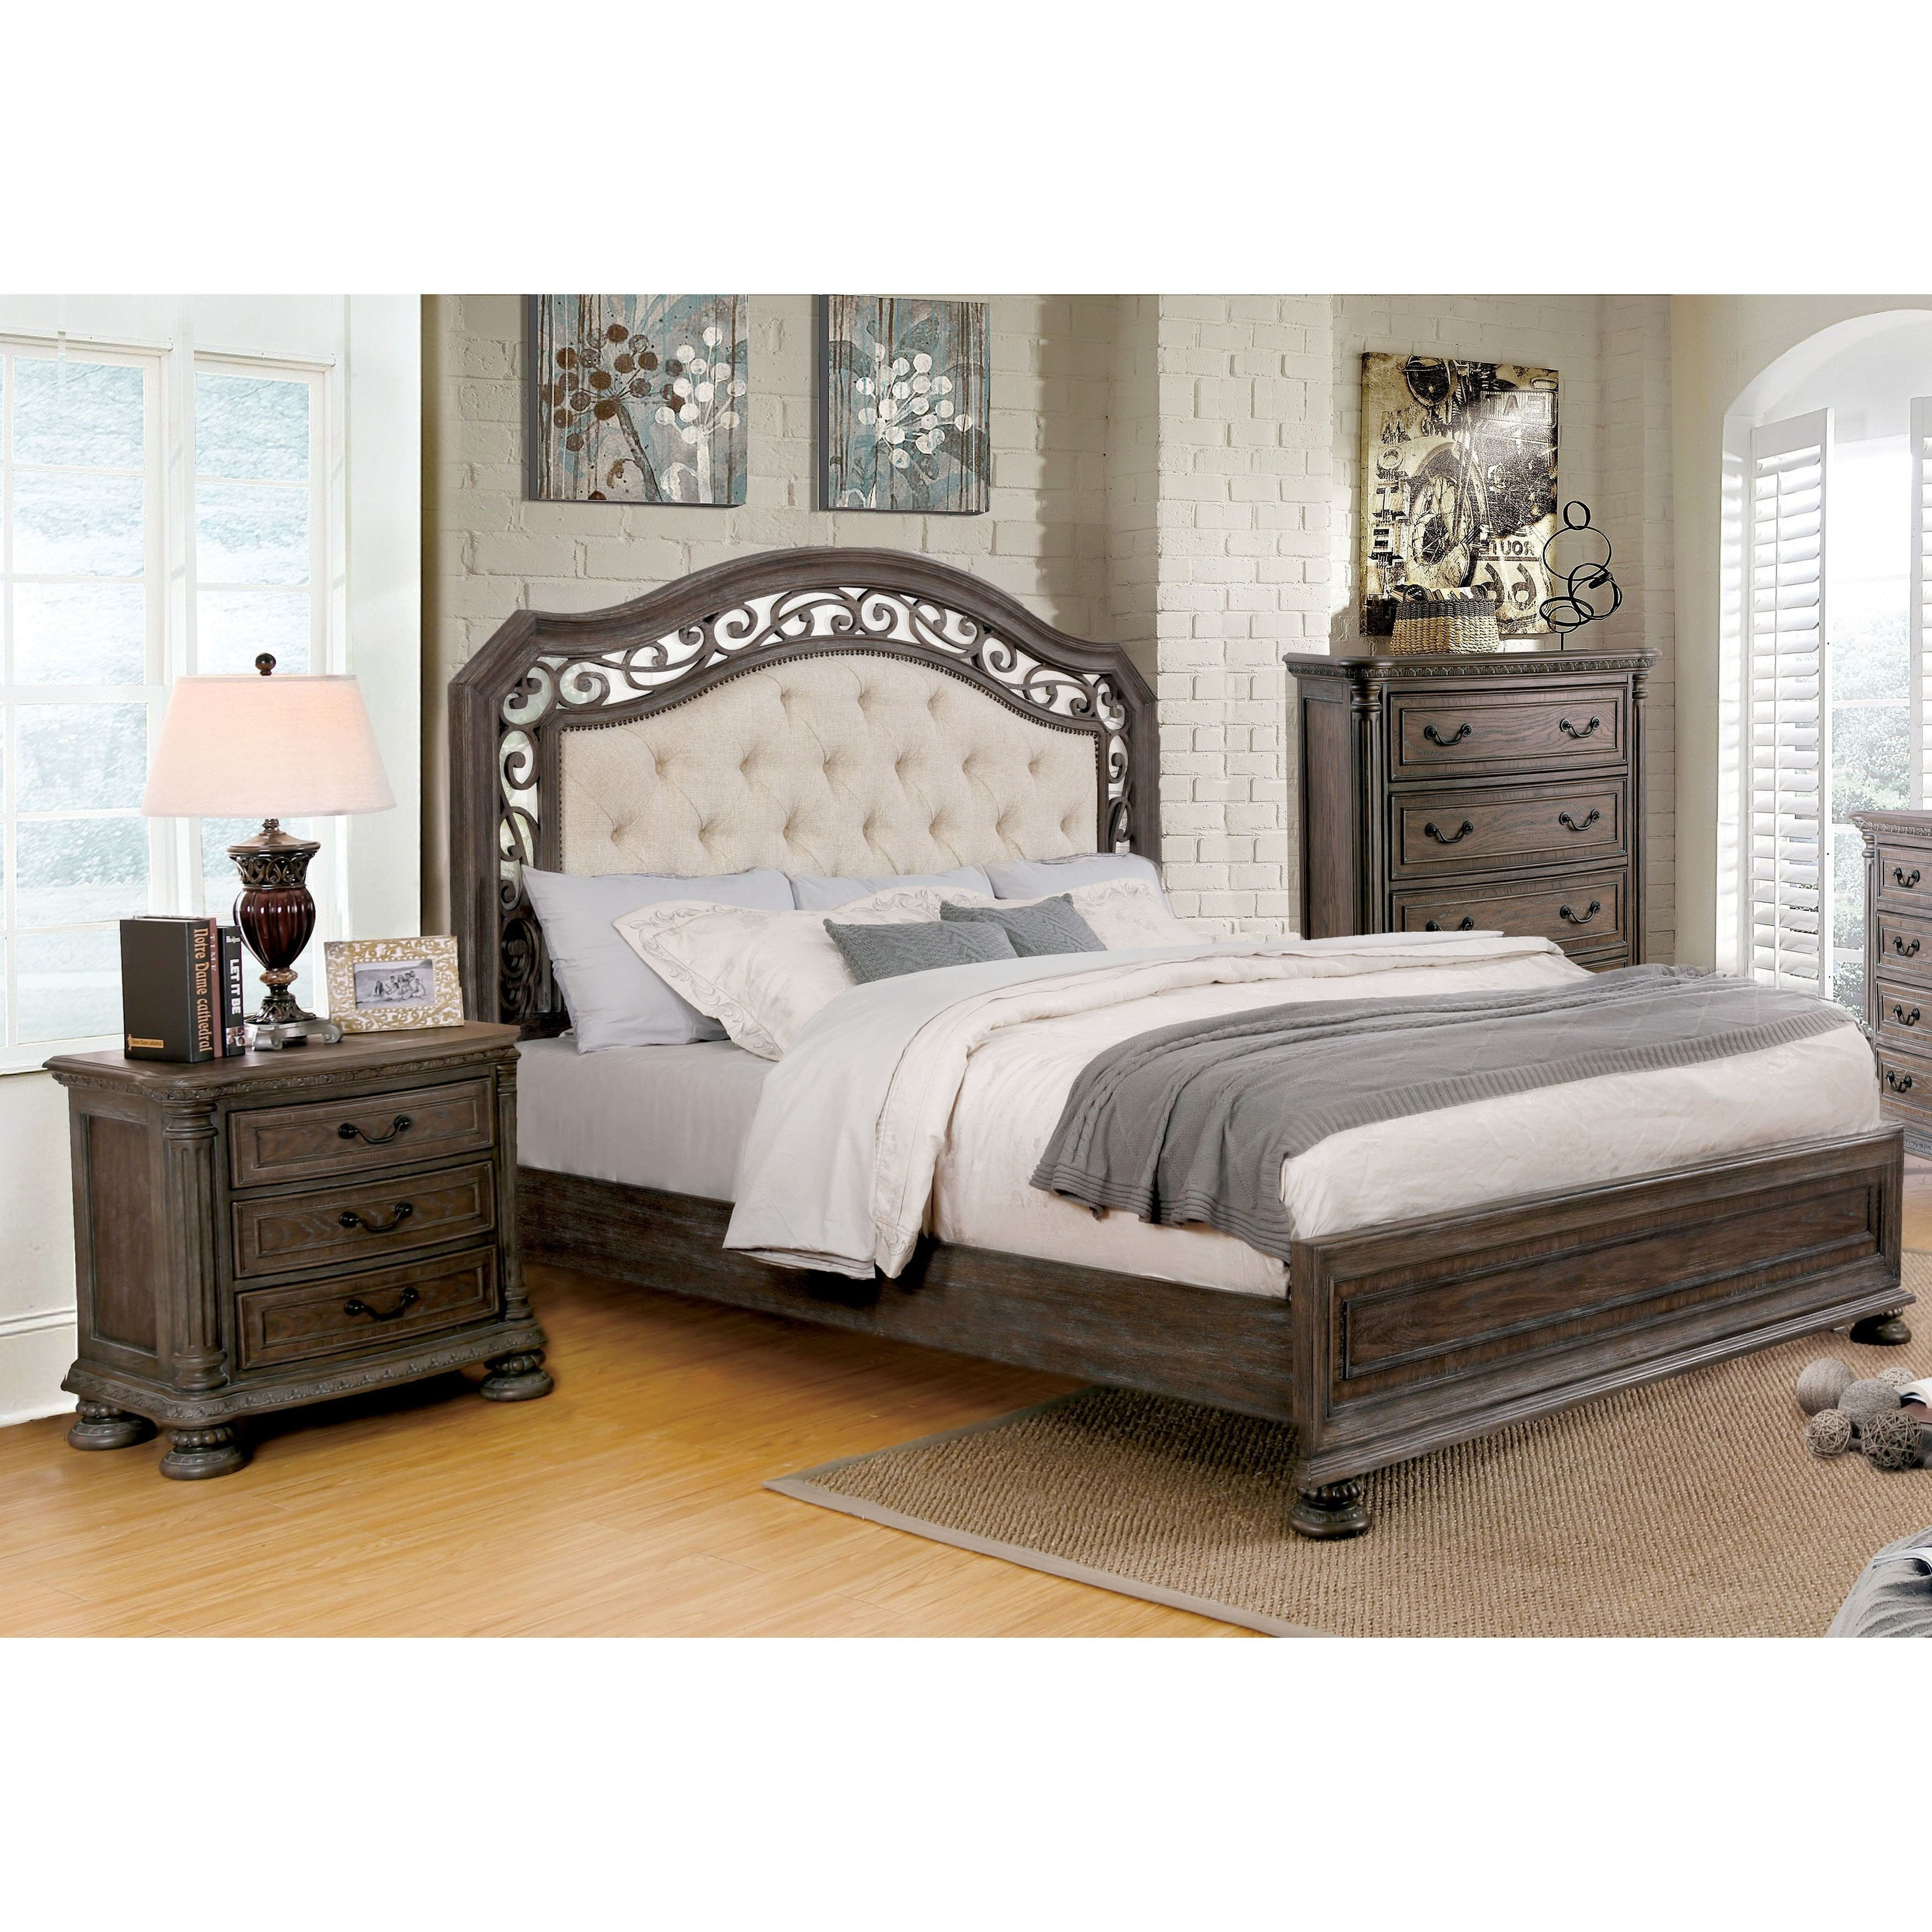 Tufted King Bedroom Set Unique Furniture Of America Brez Traditional Brown 3 Piece Bedroom